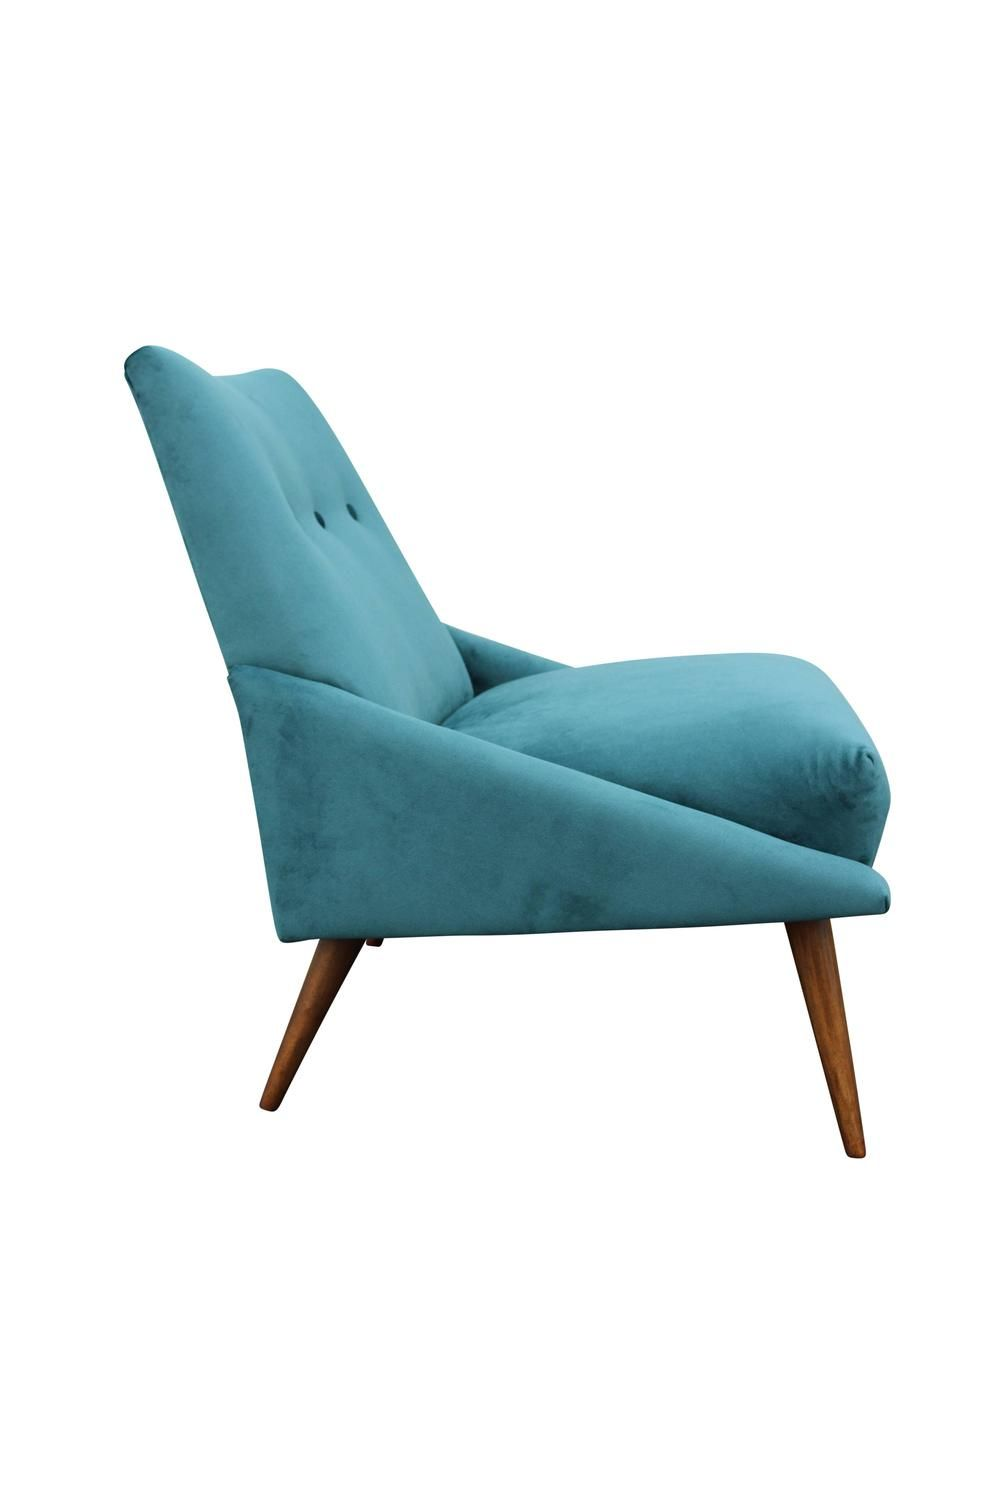 Peacock Velvet Mid Century Modern Chair   From A Unique Collection Of  Antique And Modern